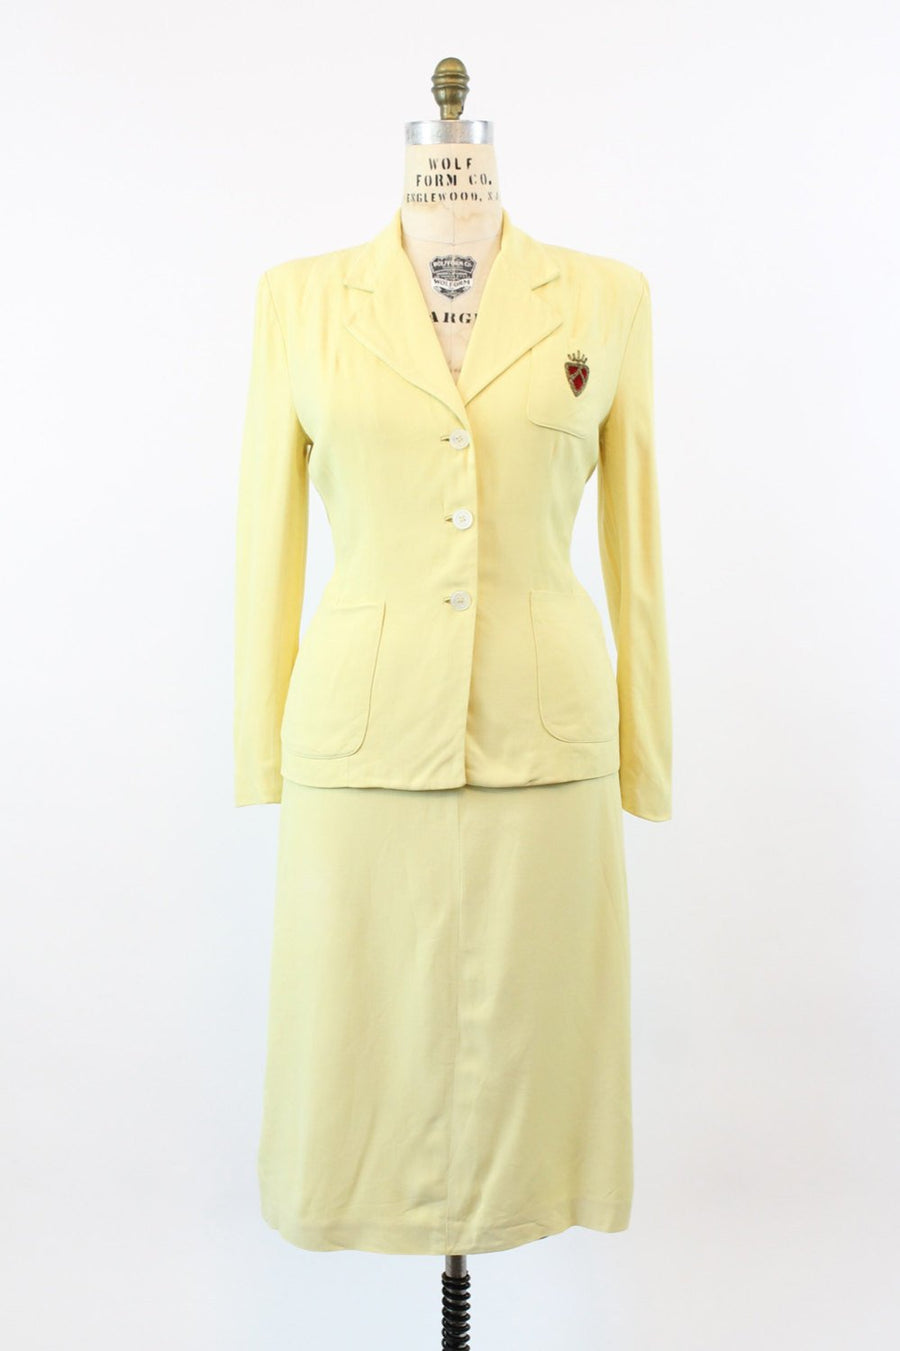 1950s yellow crest gabardine suit medium | vintage 2 piece suit